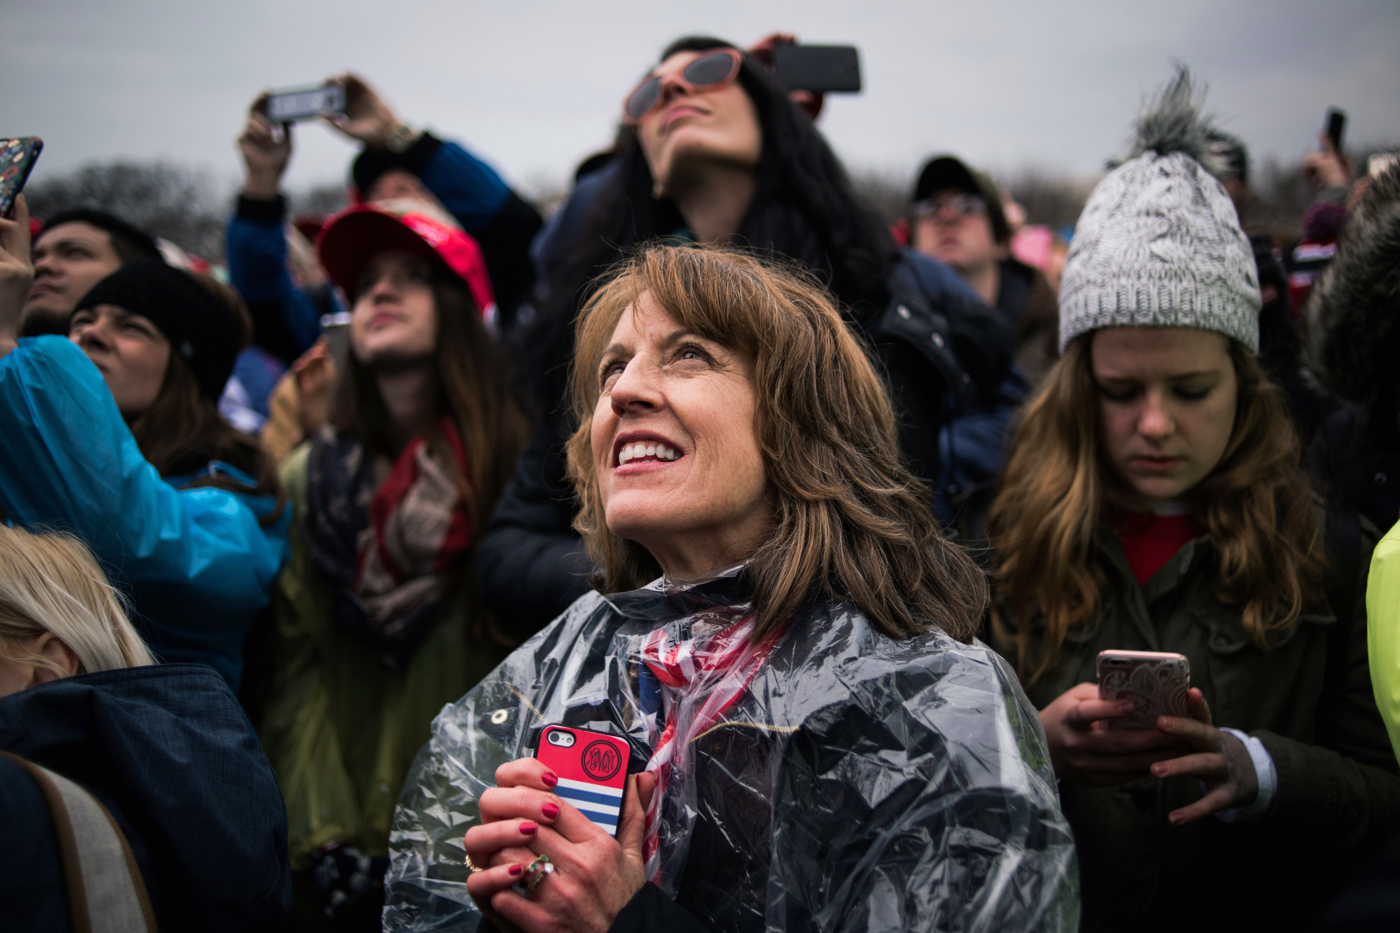 A woman looks up and recites the oath of office along with President Donald Trump's during his inauguration as the 45th President of the United States in Washington, D.C., on January 20, 2017. Credit: Mark Kauzlarich for CNN